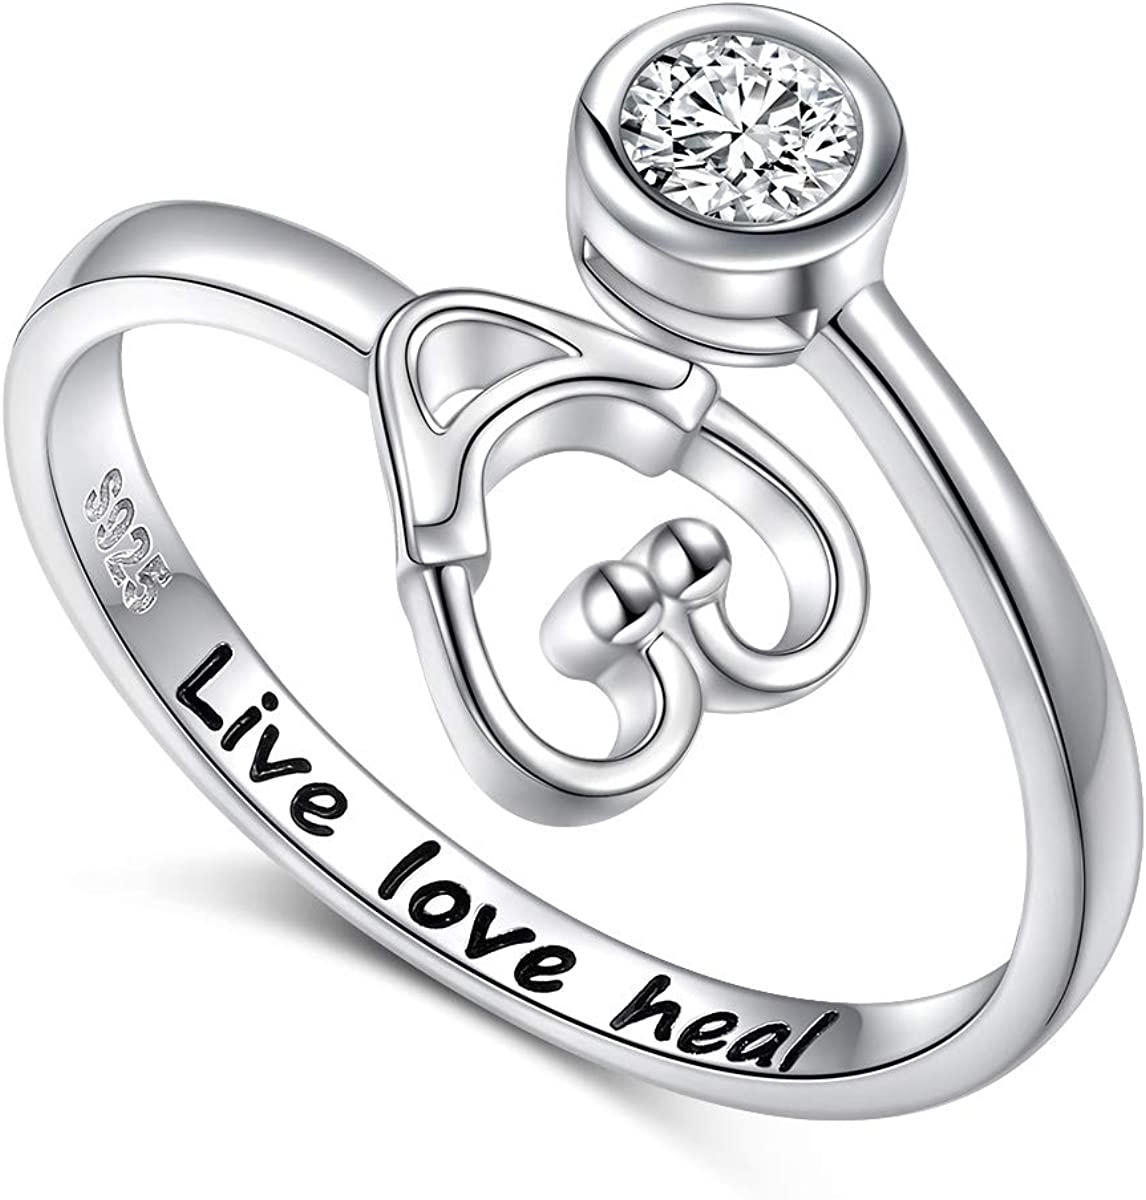 925 Sterling Silver Live Popular Love Stethoscope Heal Ranking TOP4 Jewelry for Ring